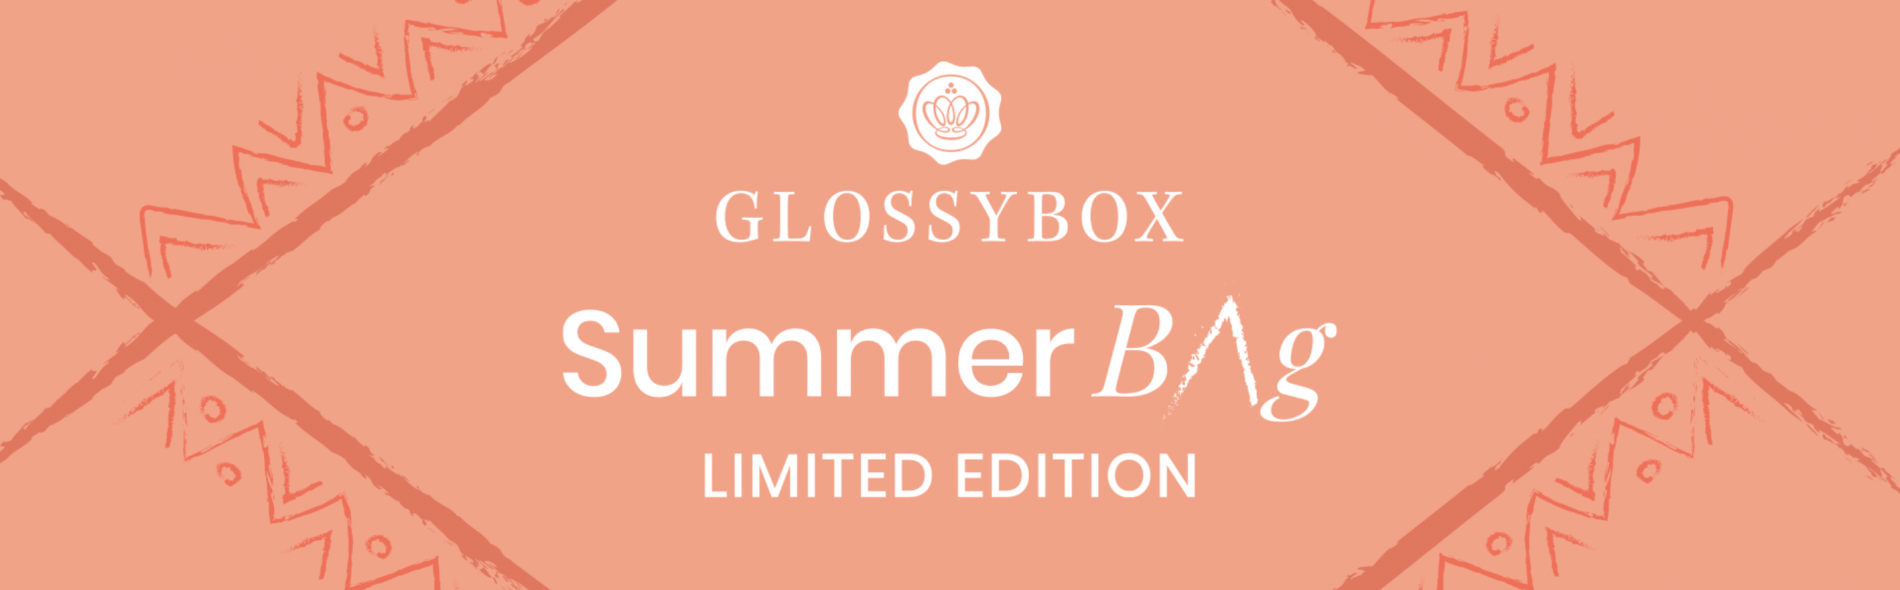 GLOSSYBOX Limited Edition Summer Essentials Bag Spoilers #1 & #2